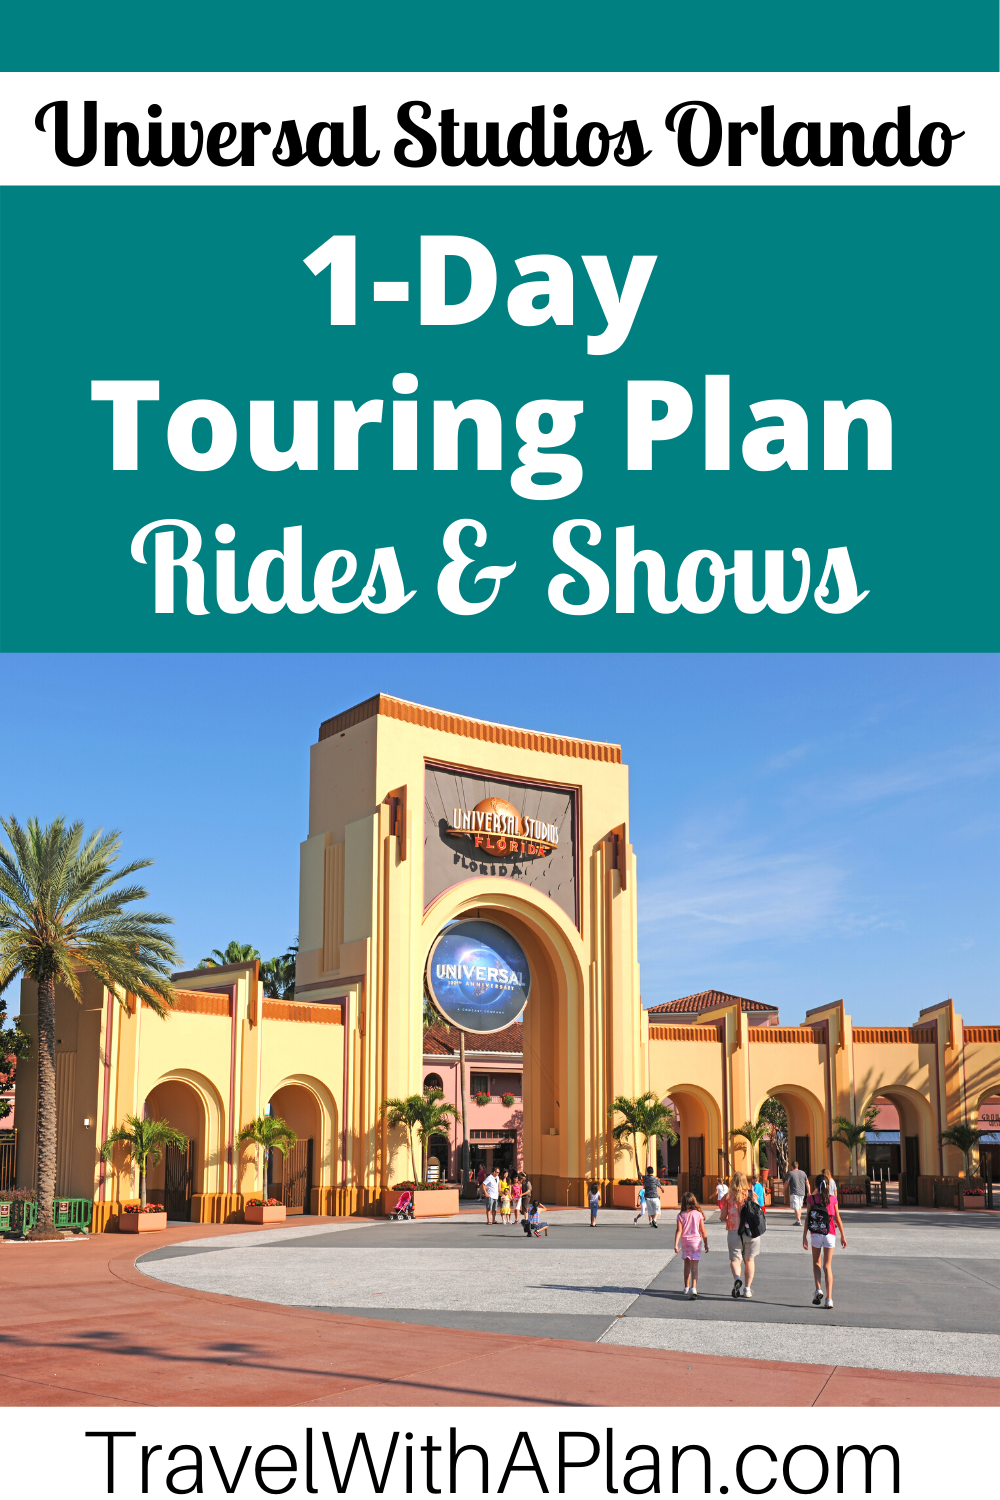 Click here for a complete Universal Studios Touring Plan that includes parking, arrival, dining, and touring tips!  #UniversalStudios #Orlando